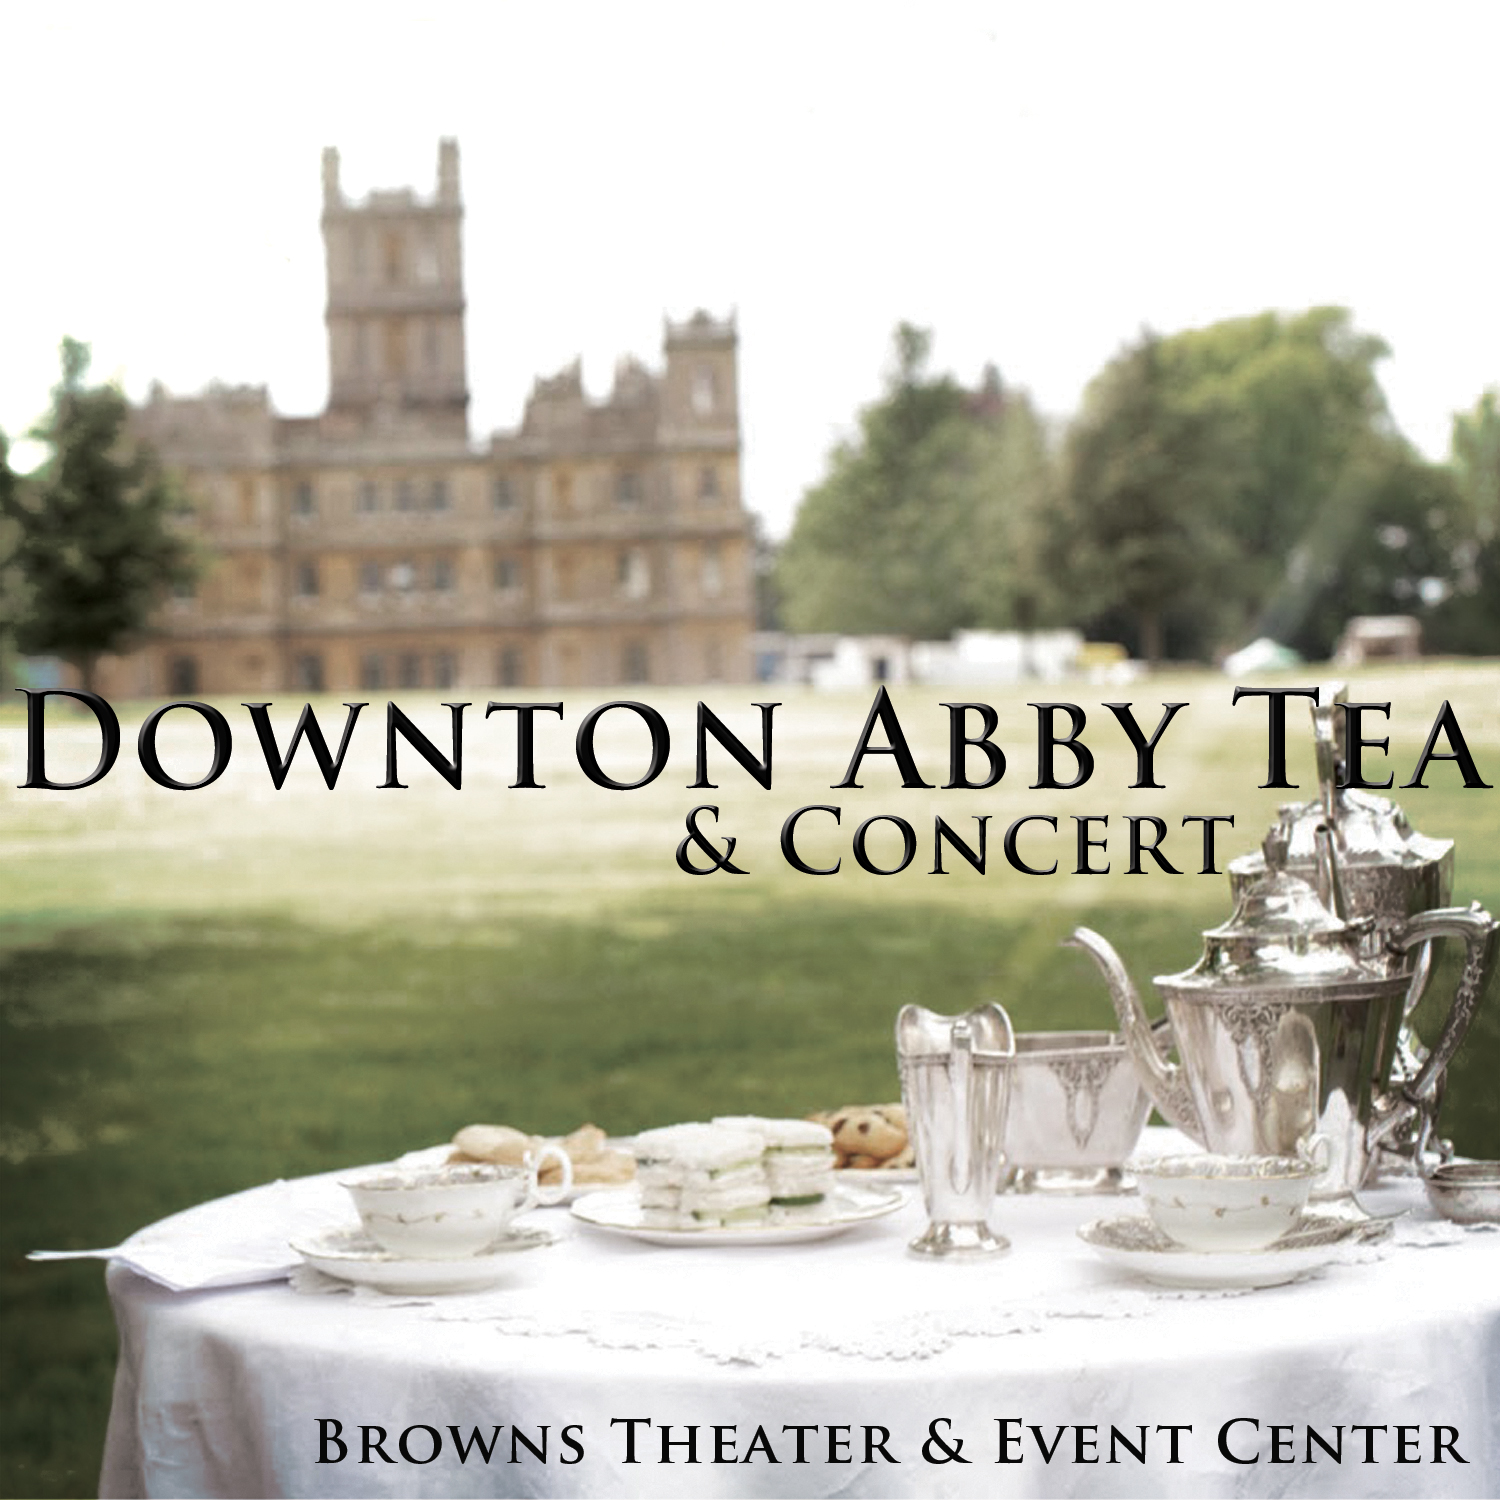 Downton Abby Tea & Concert